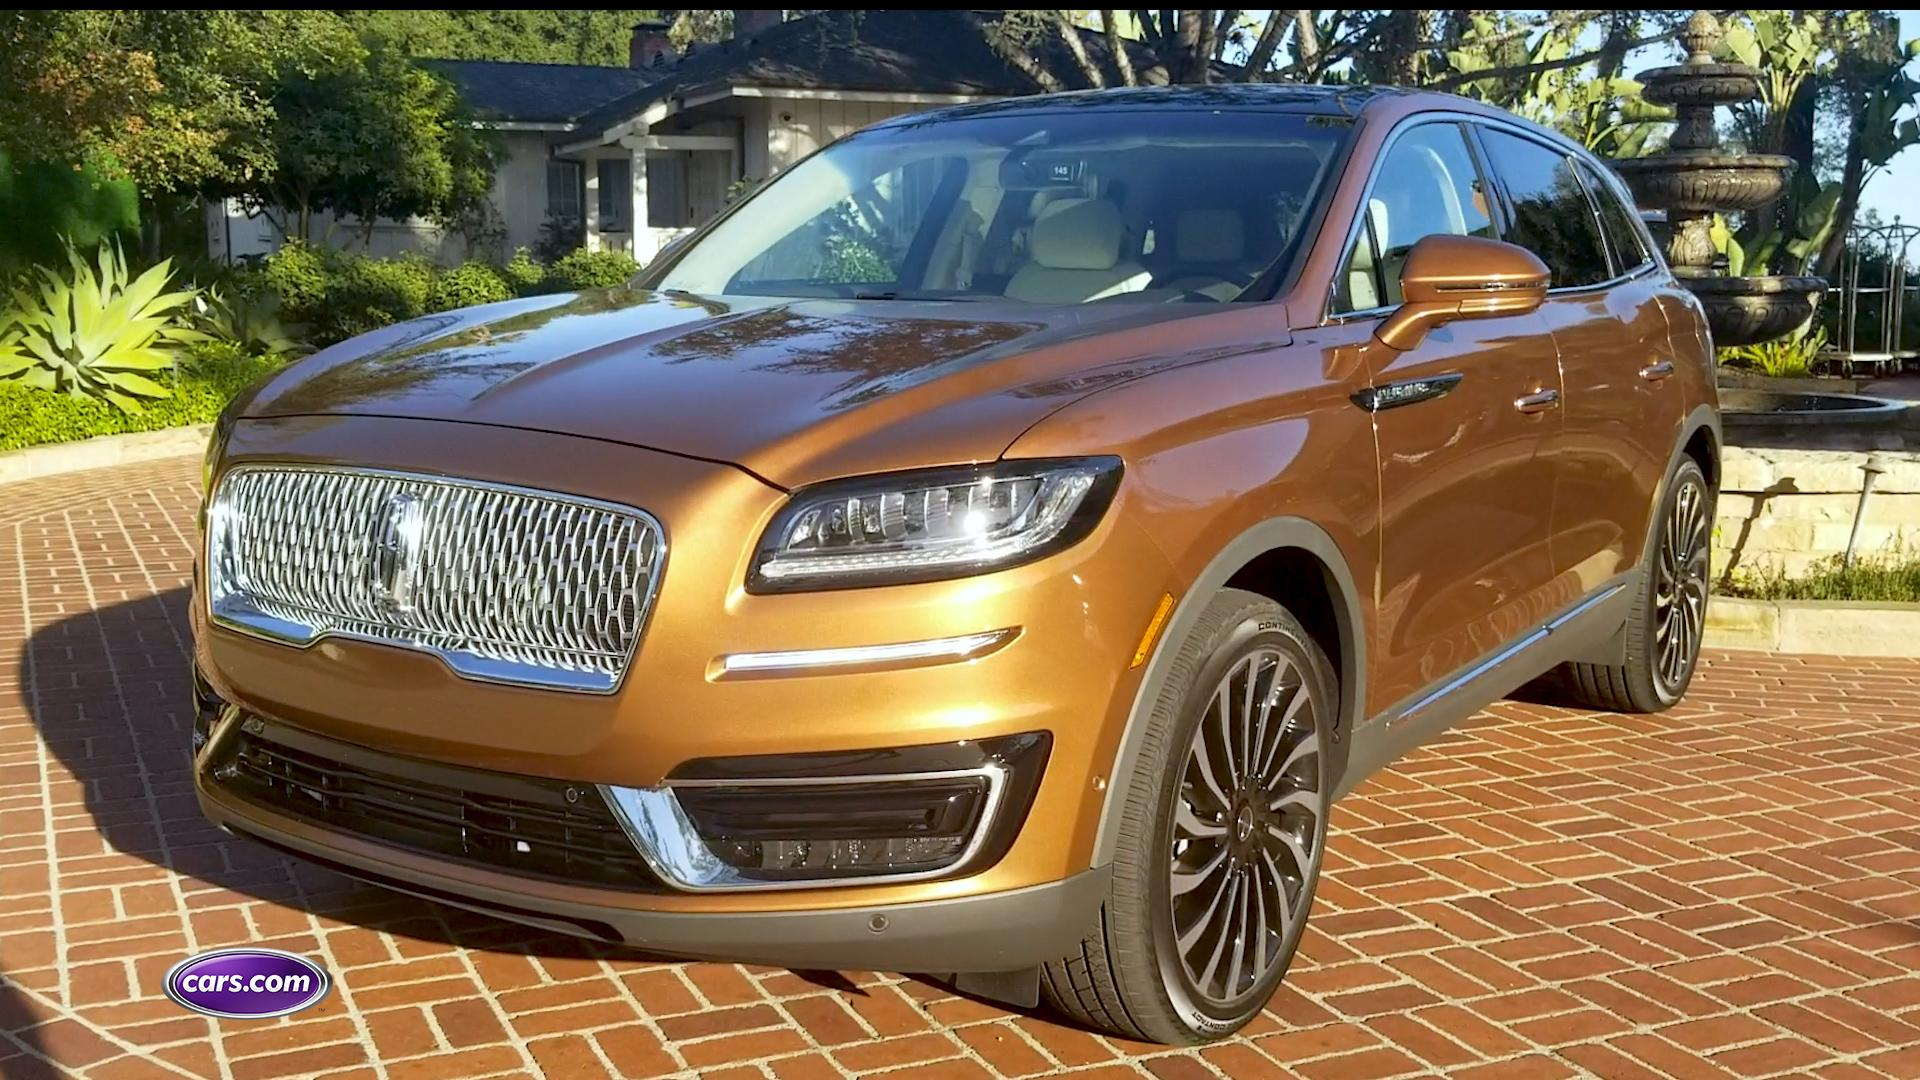 Video: 2019 Lincoln Nautilus: First Drive — Cars.com